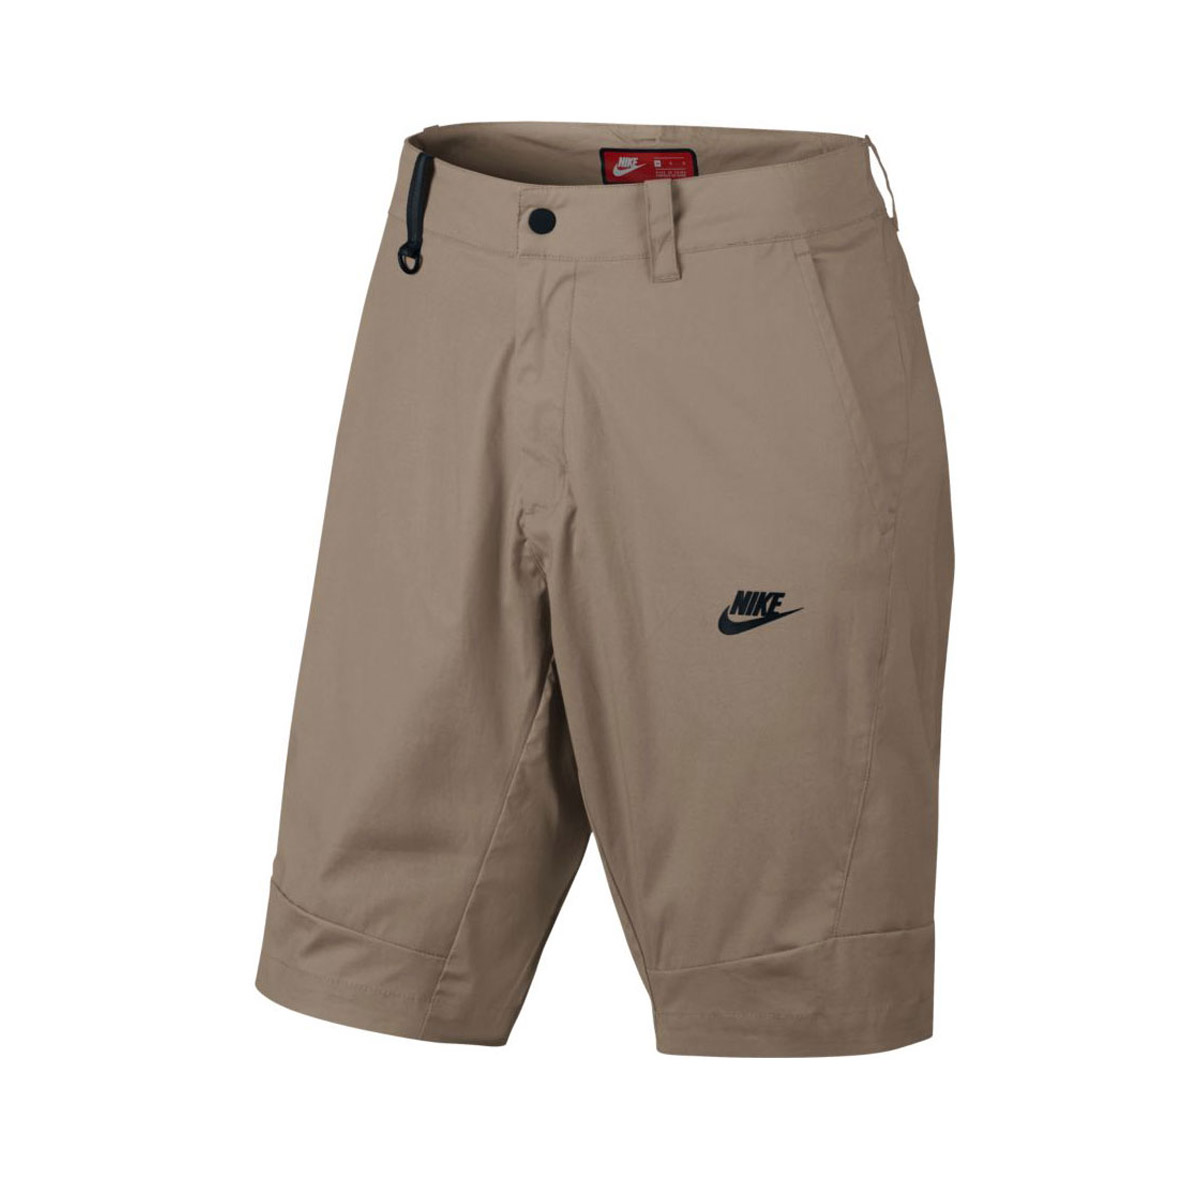 NIKE AS M NSW BND SHORT WVN(死亡耐克砰呜呜短)KHAKI/BLACK 17SU-I